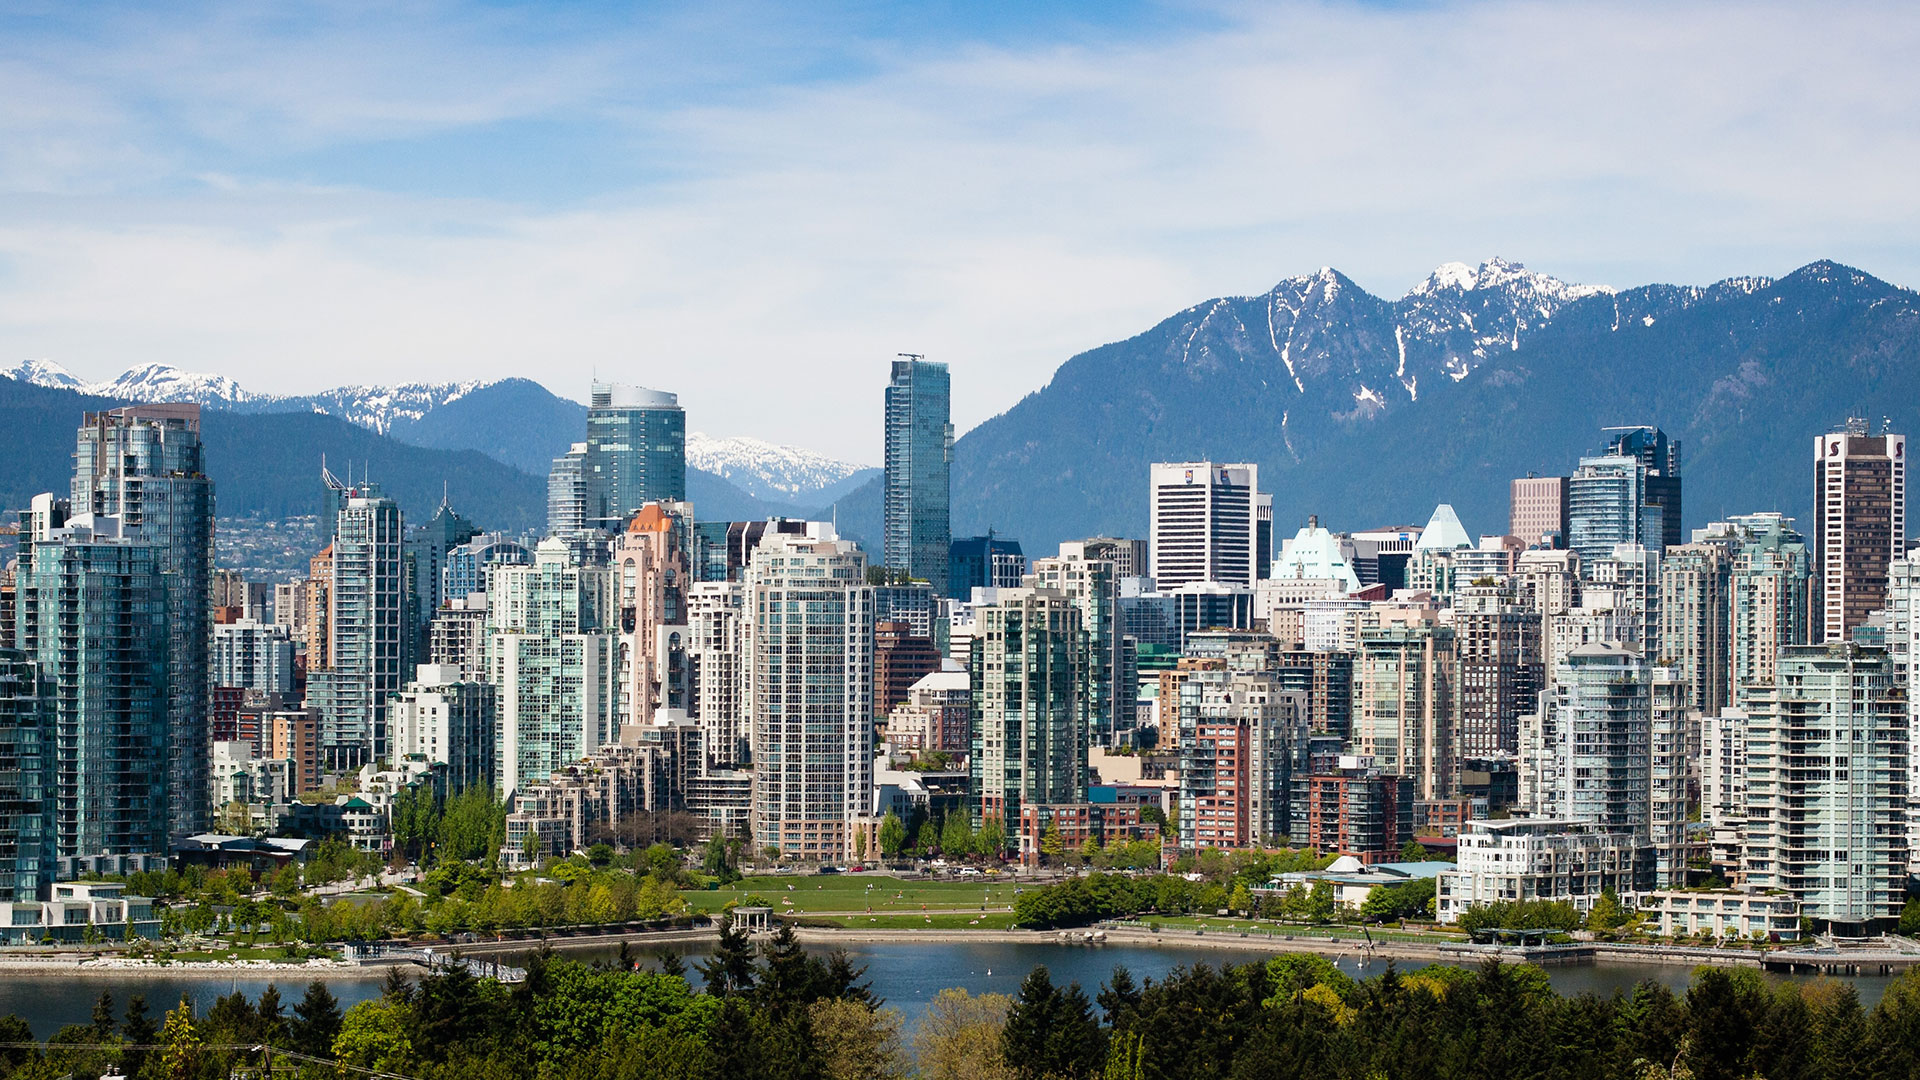 Houses for Sale in Vancouver, Homes for Sale in Vancouver